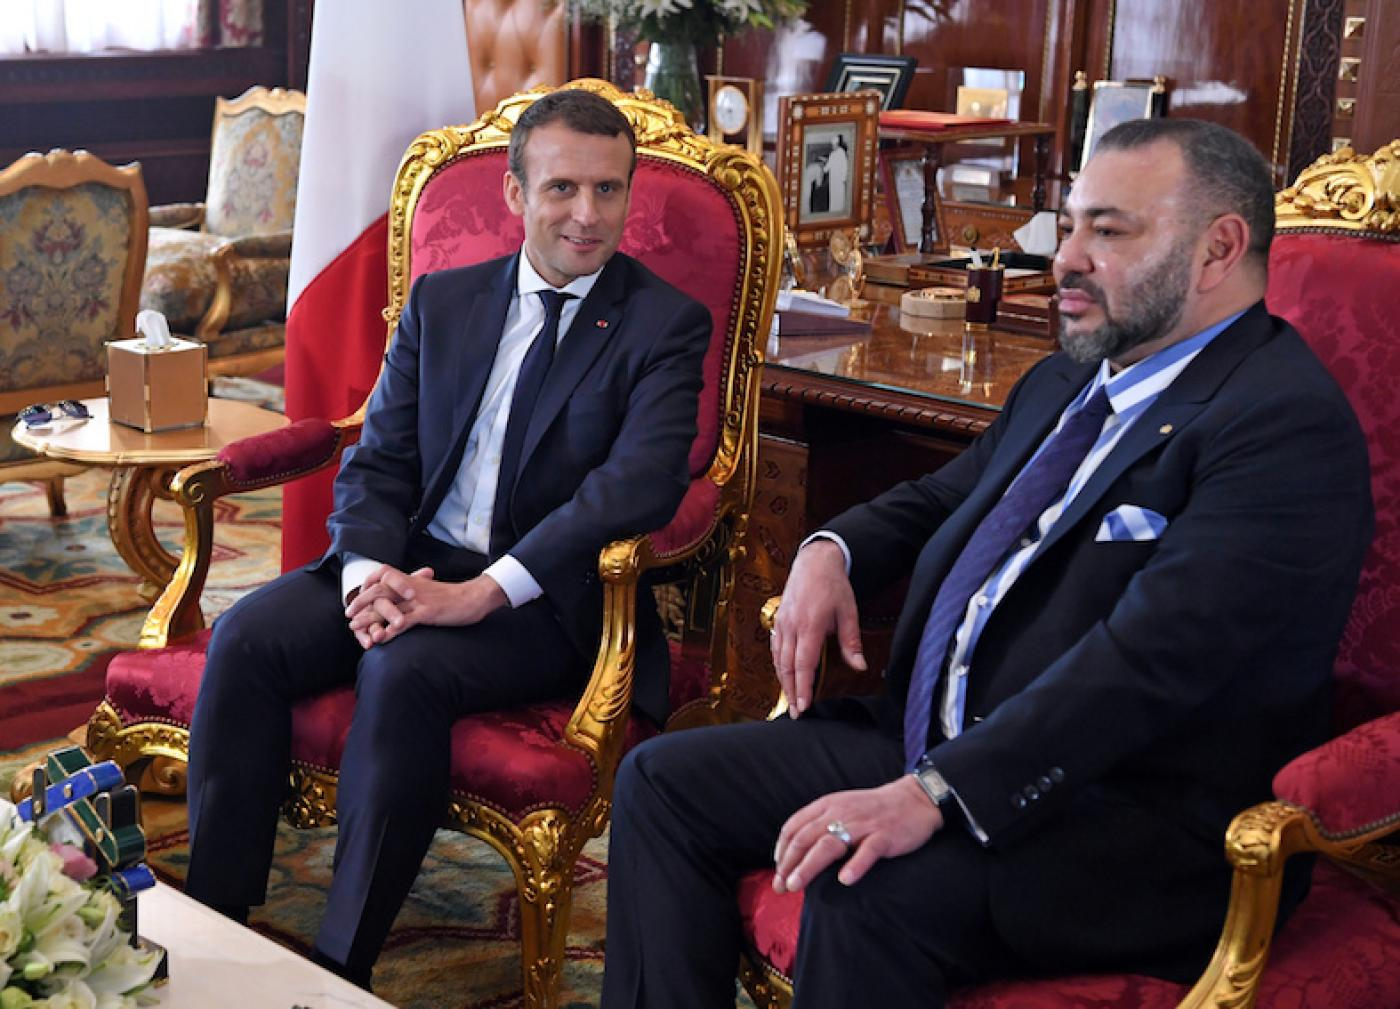 French President Emmanuel Macron meets Mohammed VI in Rabat in 2017 (Reuters)